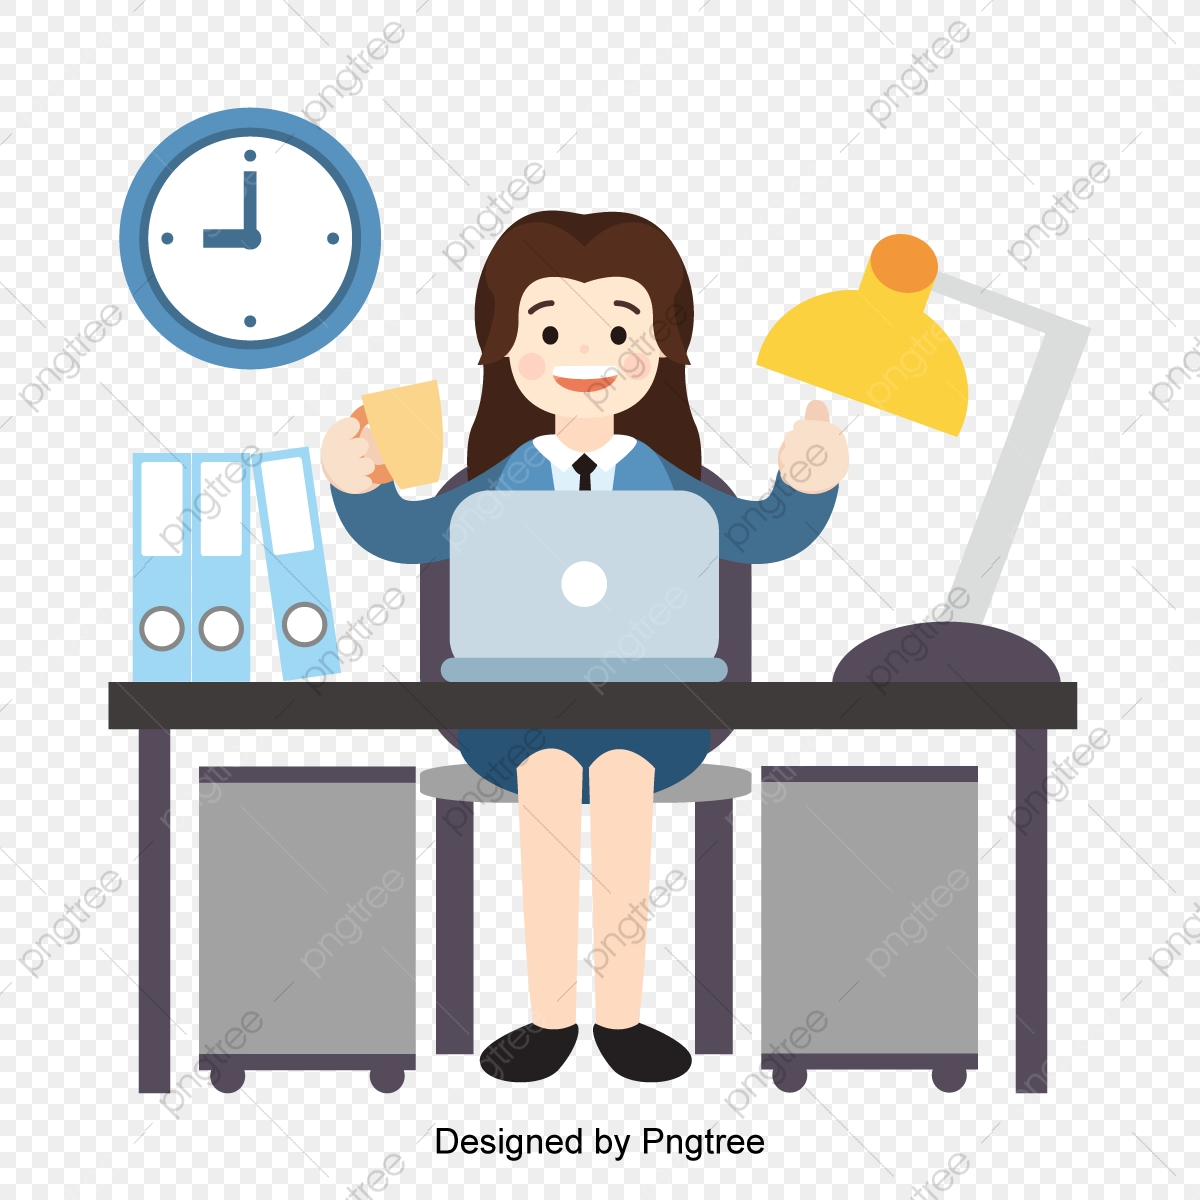 Designer, Workplace, Office, Clerk PNG Transparent Clipart Image and.